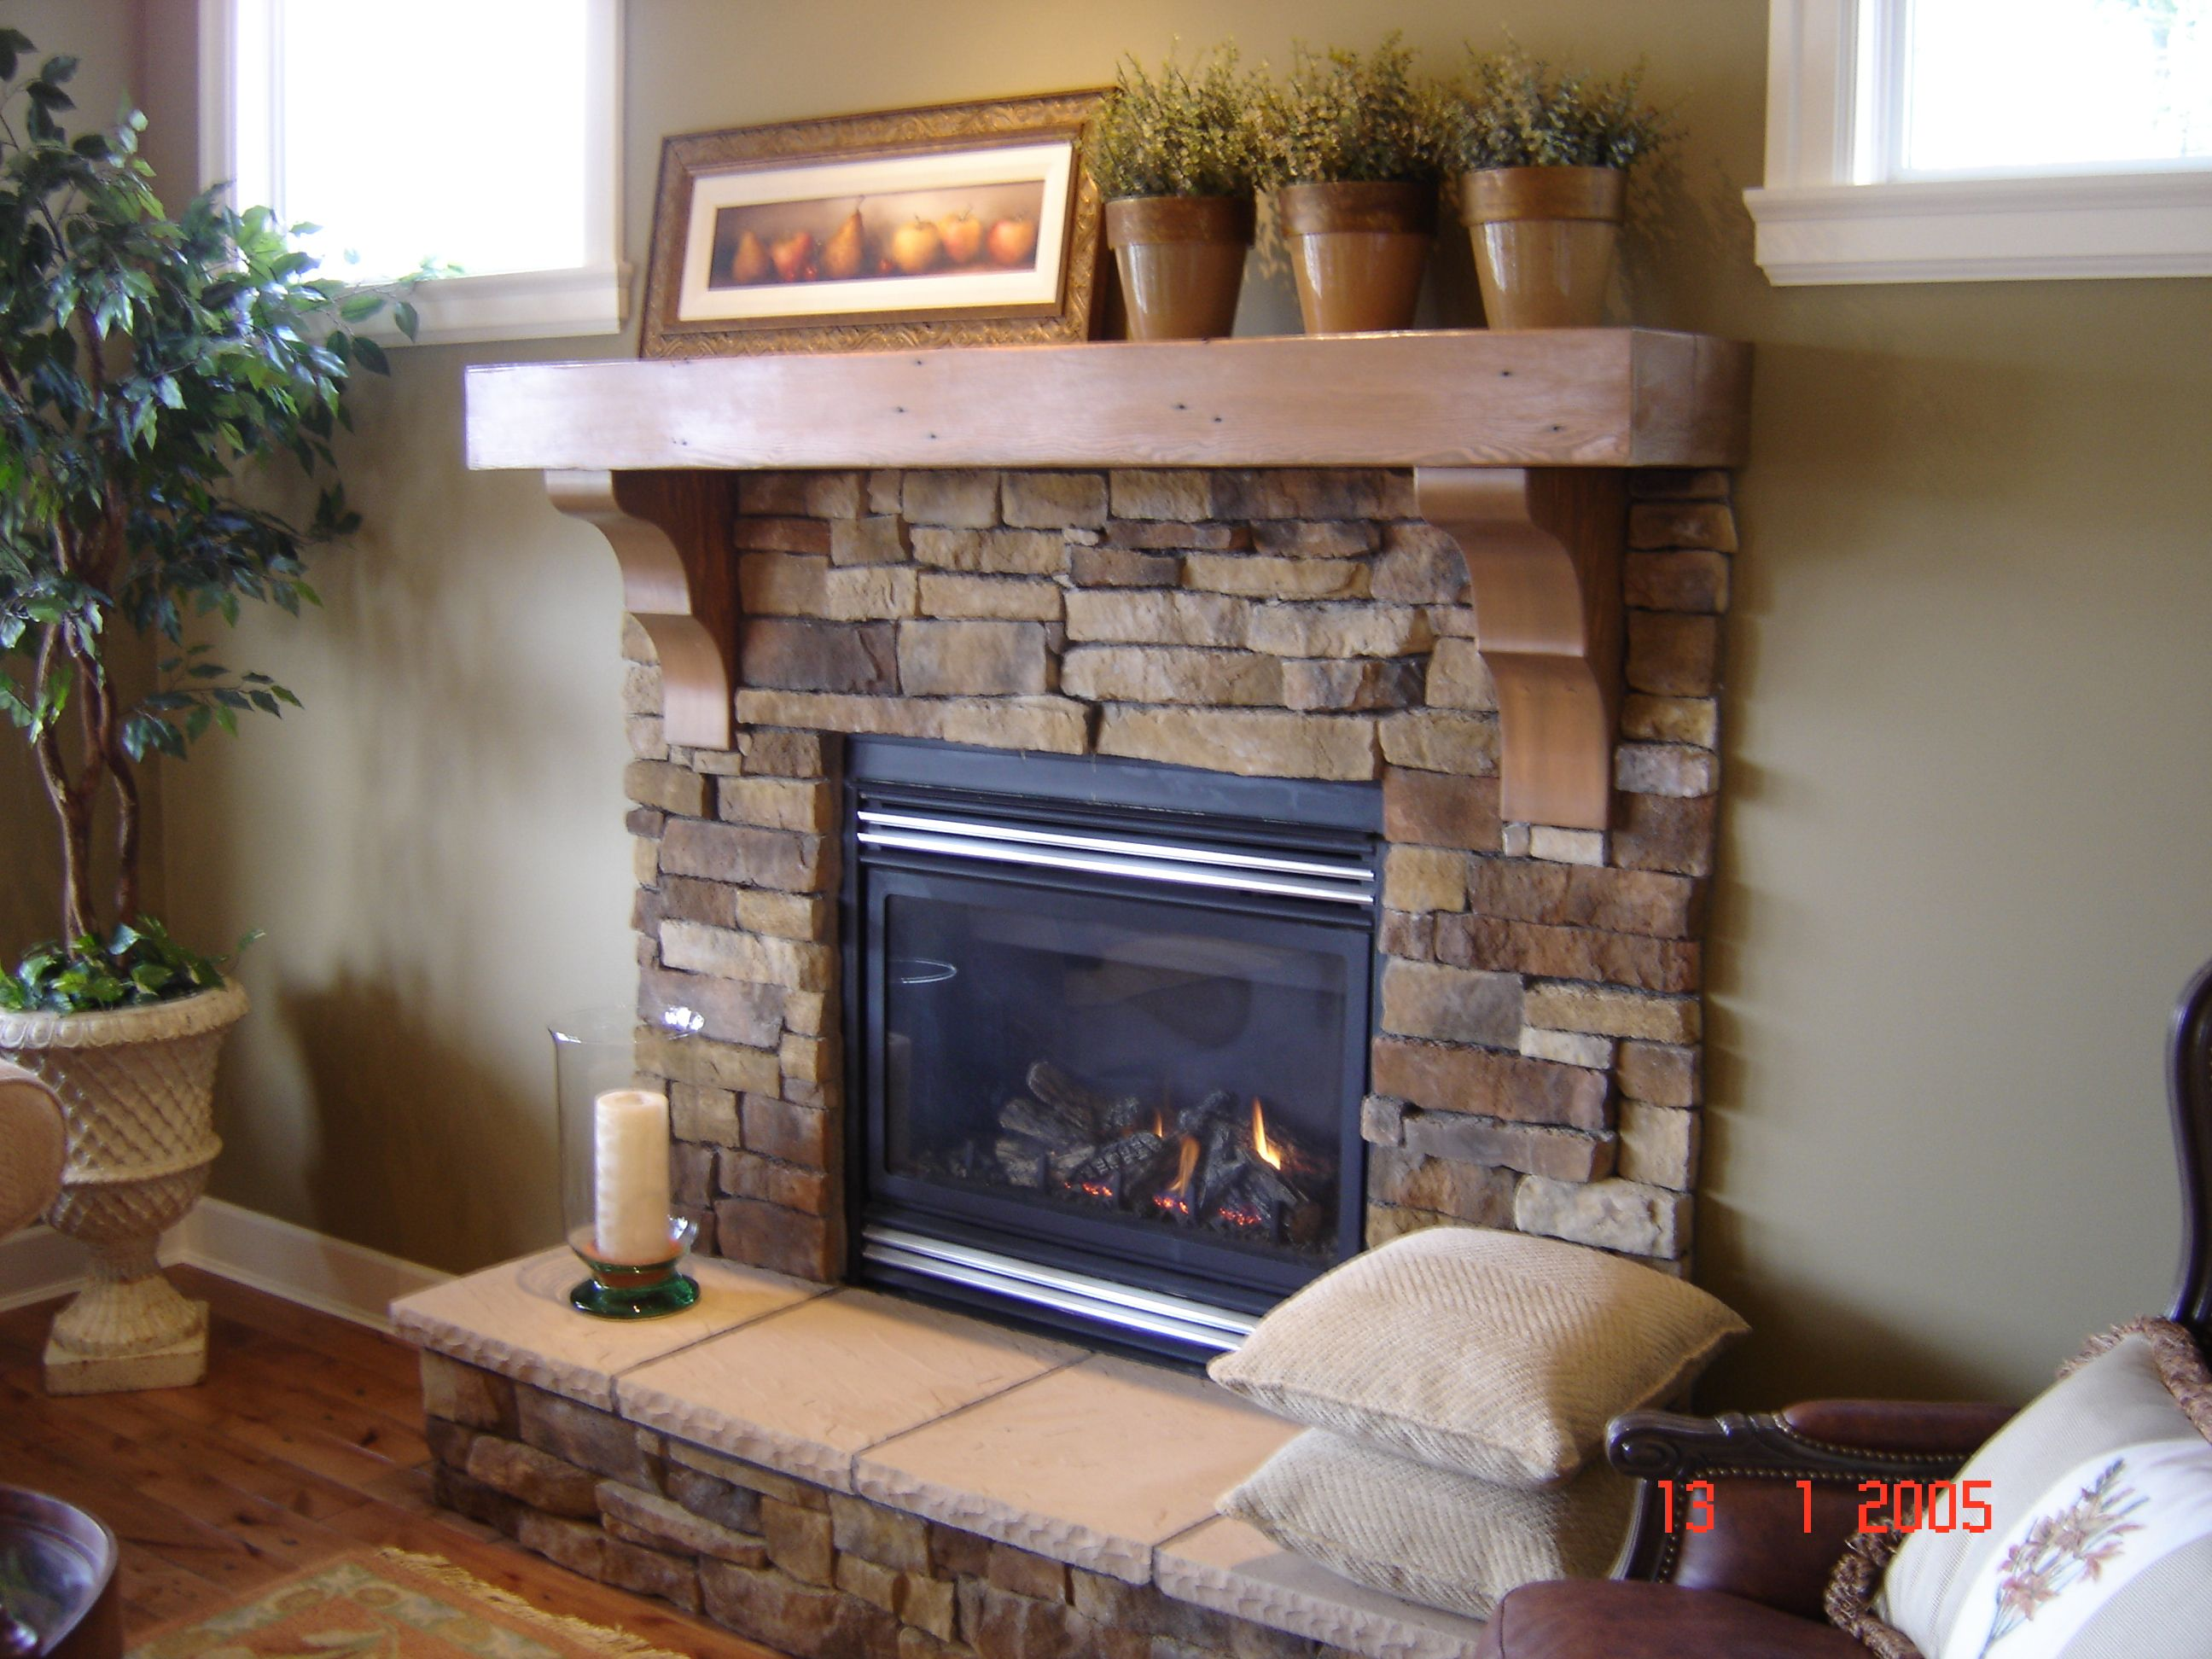 Find This Pin And More On Fireplace Mantels By Hazelmeremantel.